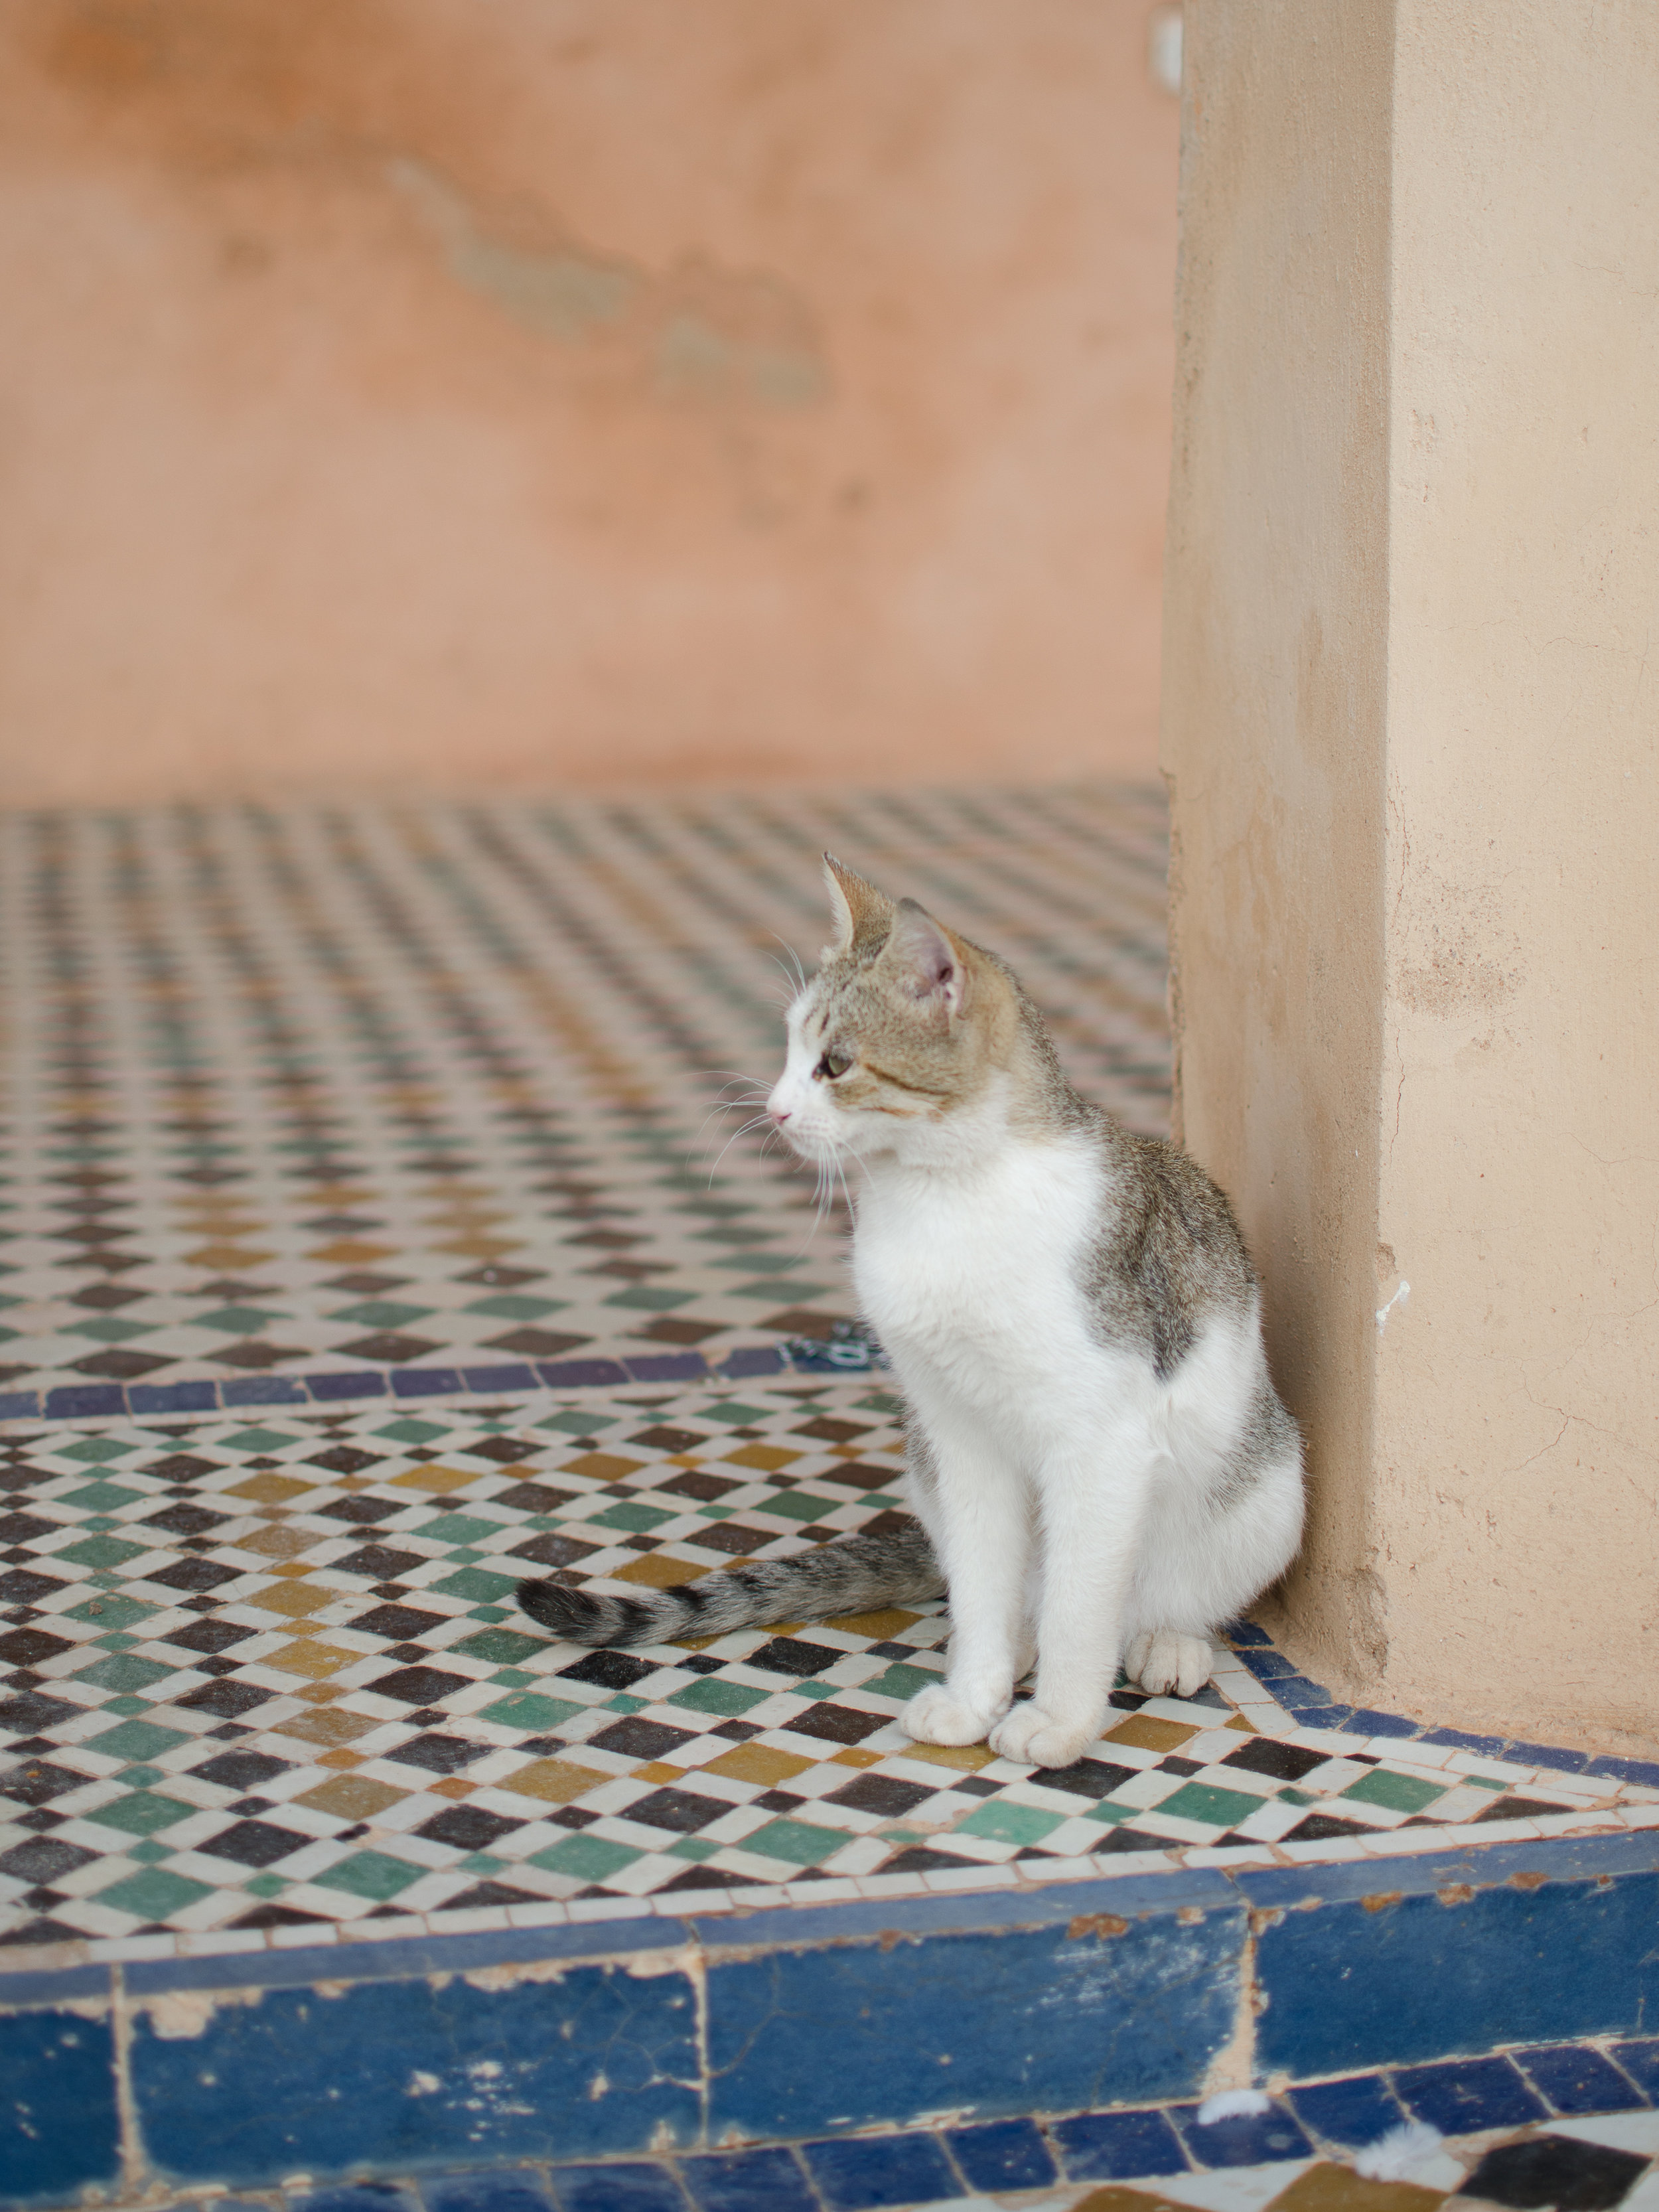 Marrakech is full of adorable, little cats. We found this one at the Badi Palace